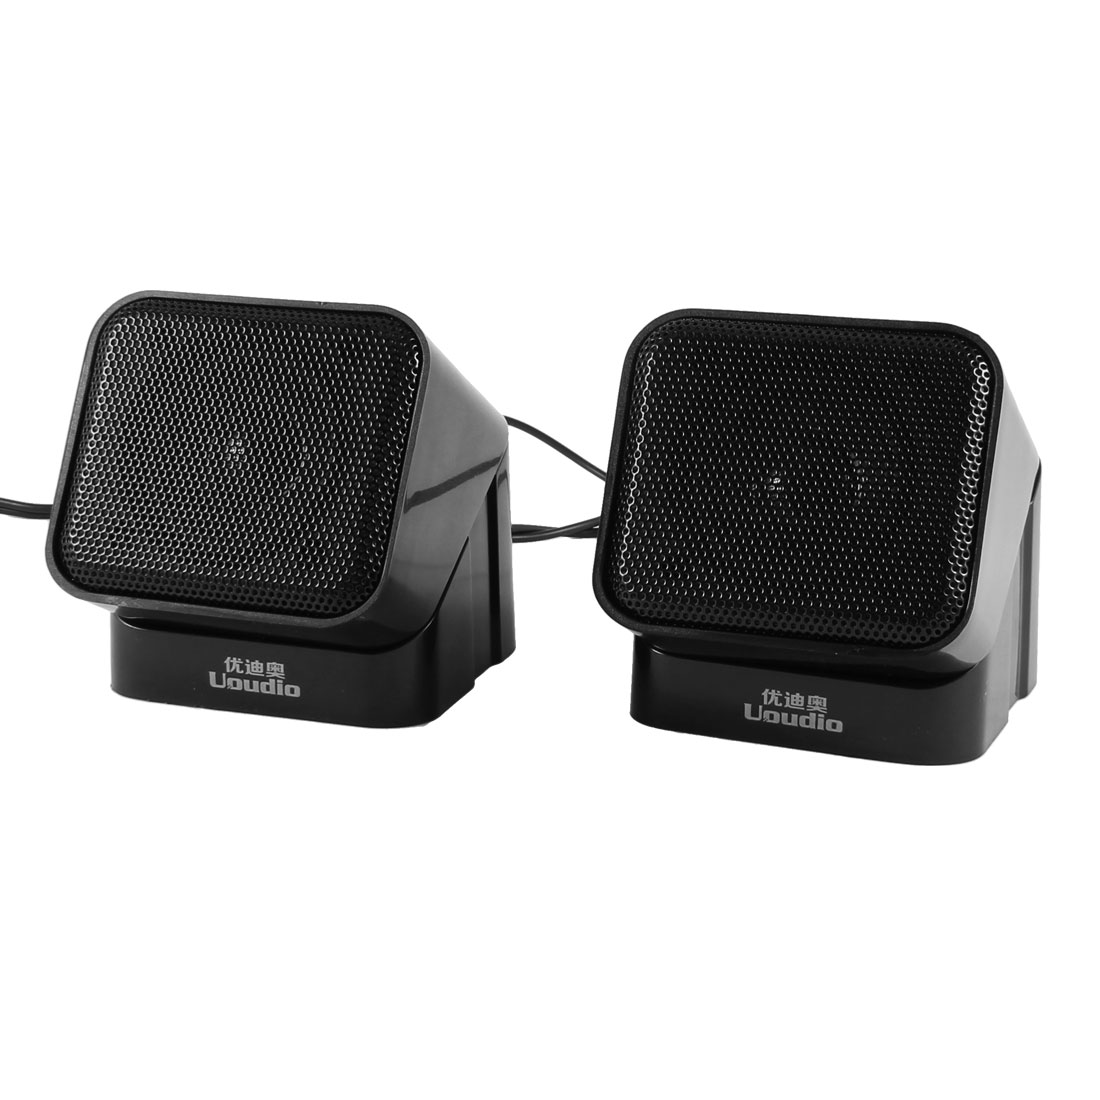 Pair 3.5mm Plug USB 2.0 Square Mini Multimedia Speaker Loudspeaker Black